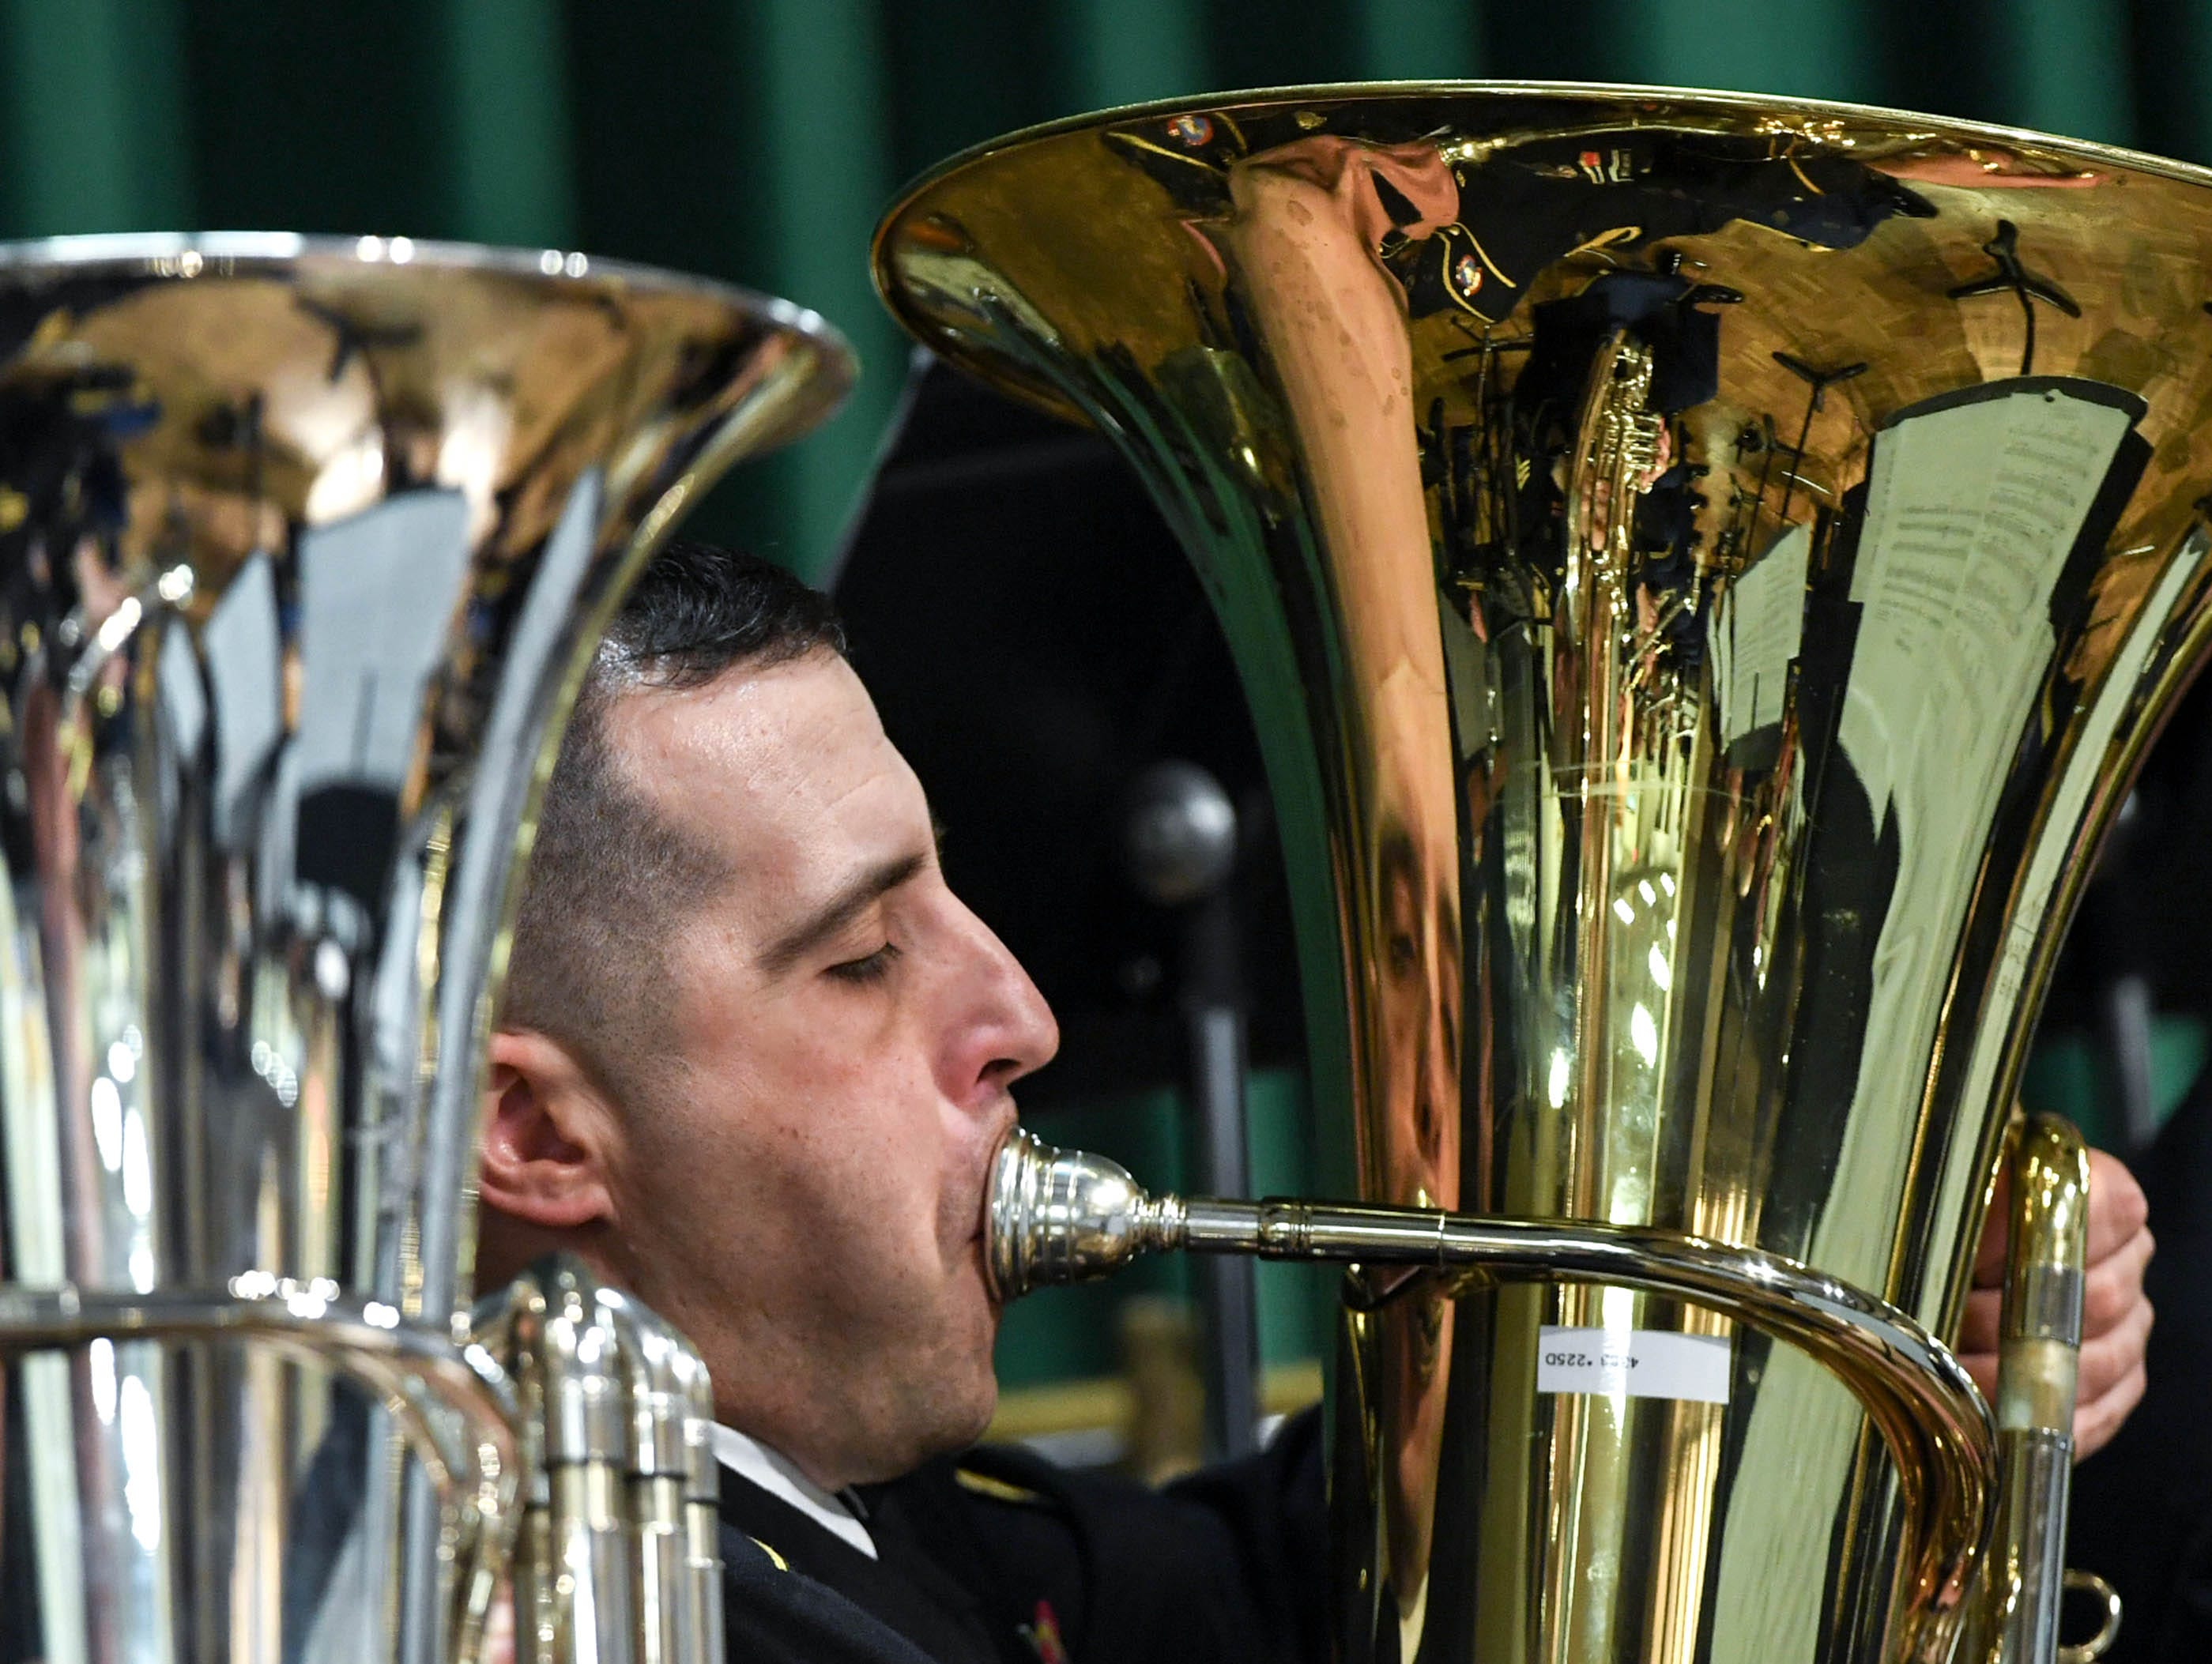 SGT Justin Stowe of Hartwell, Georgia, plays tuba with the 282d U.S. Army Band during a free concert at T.L. Hanna High School in Anderson Thursday, March 7.